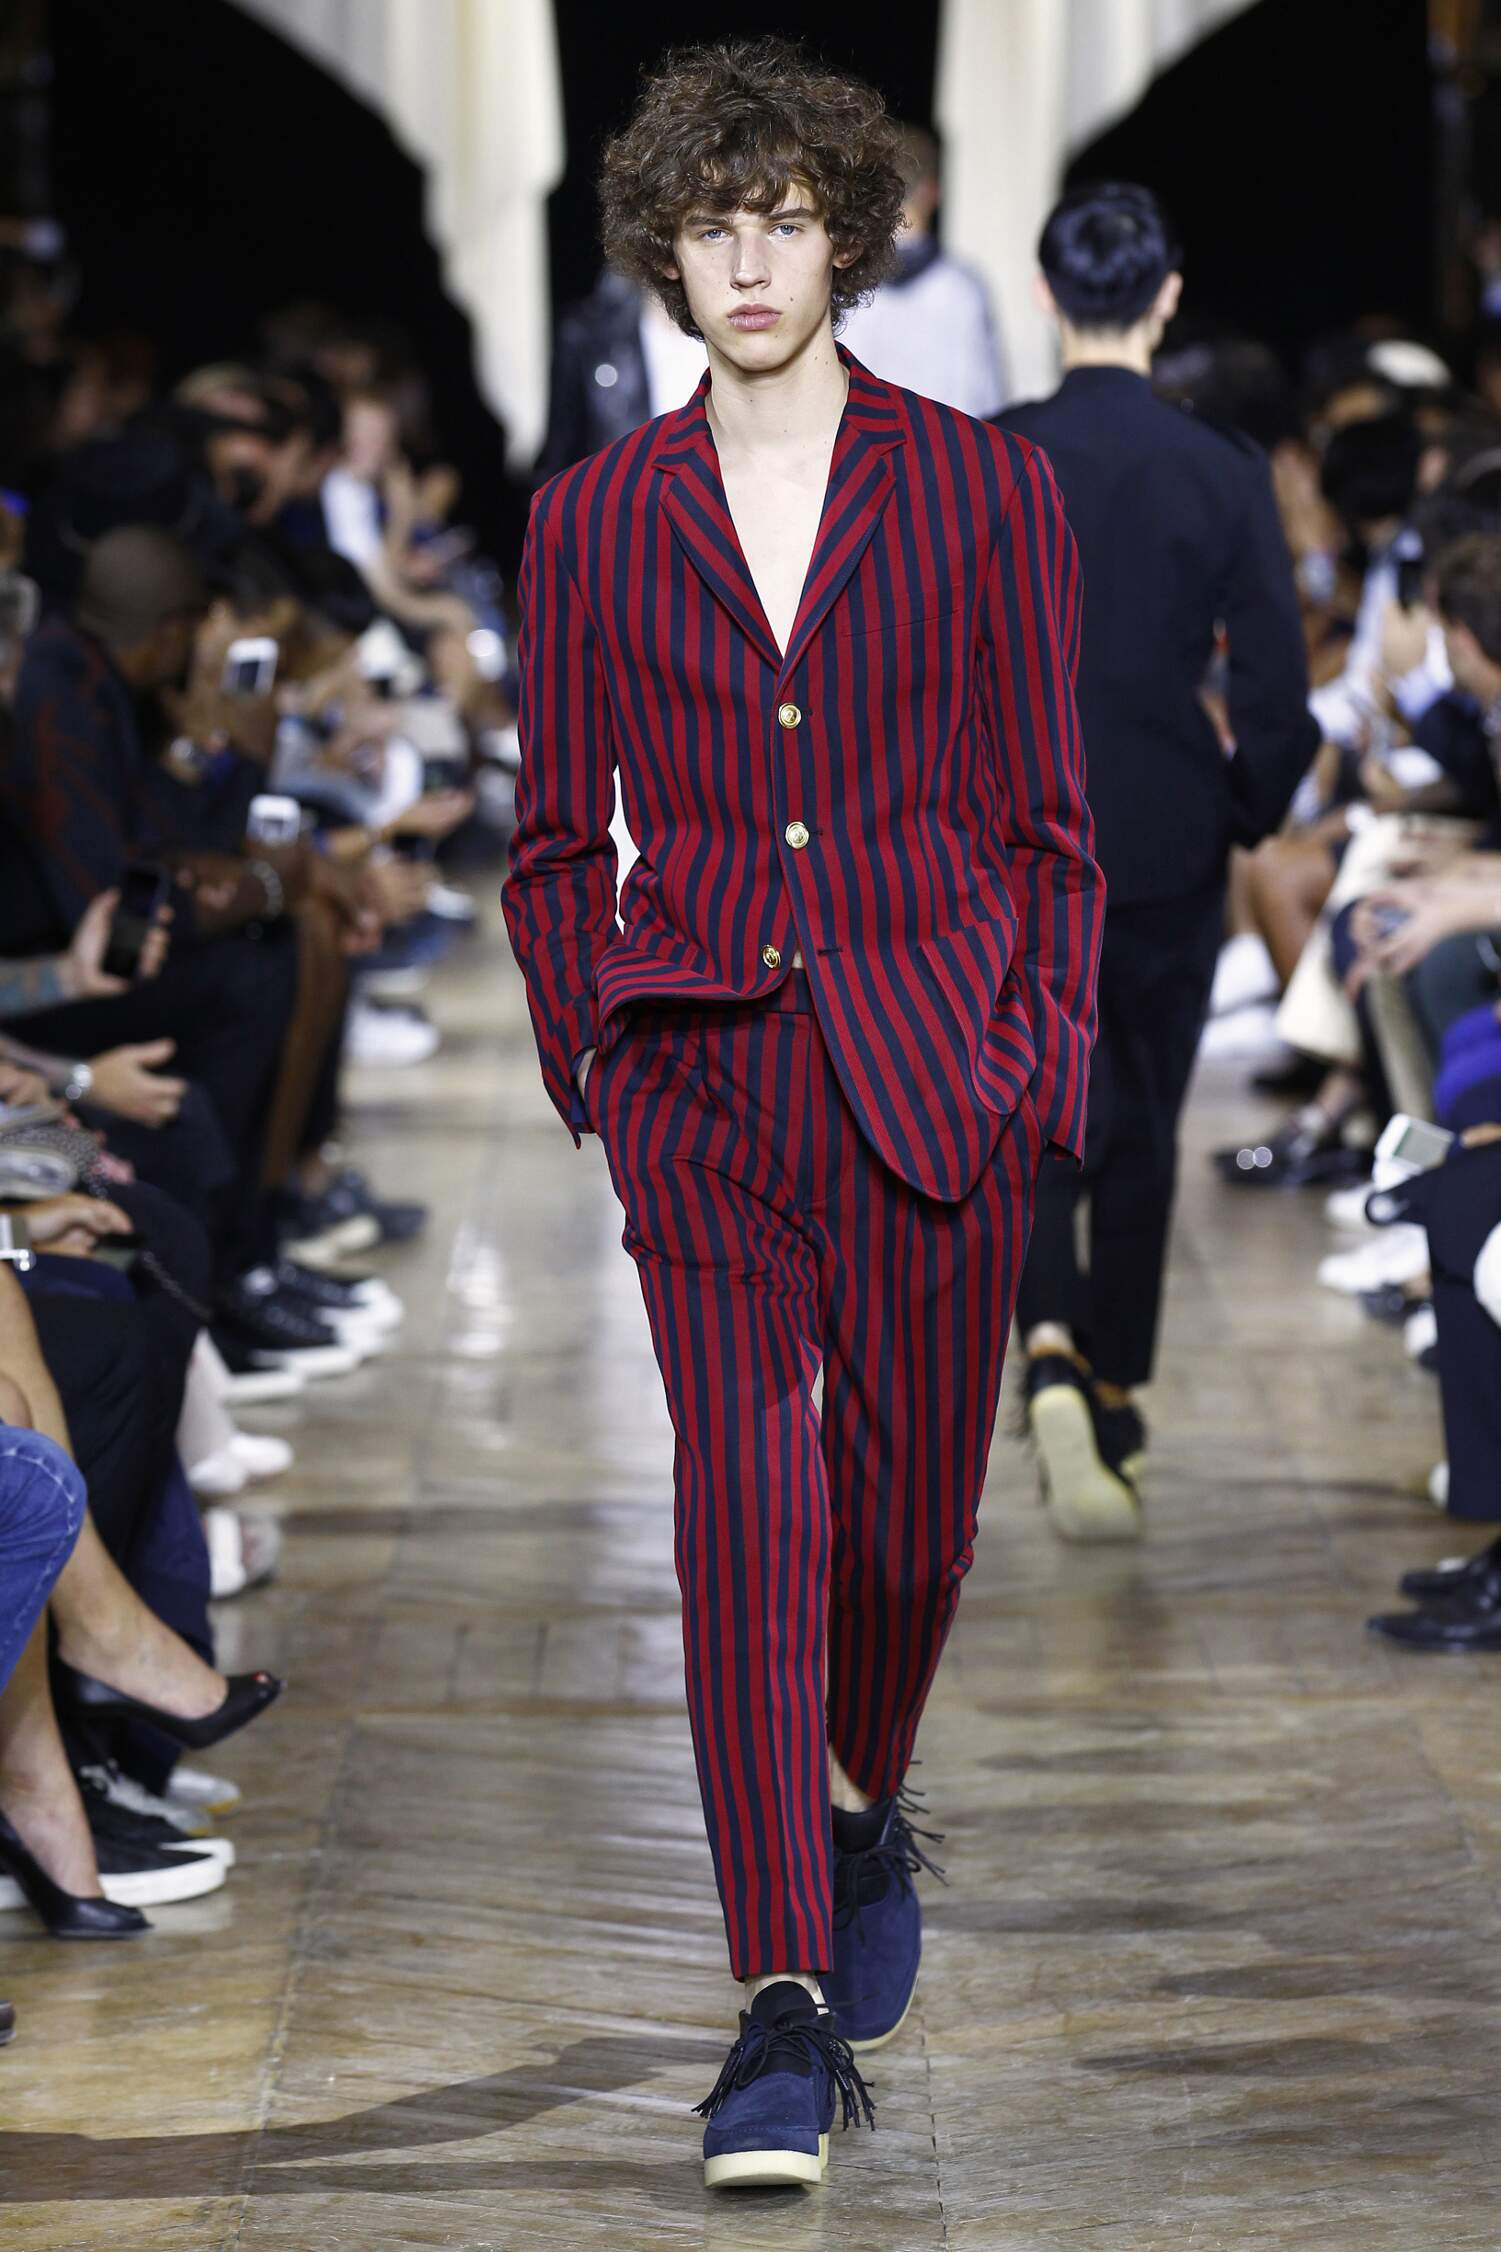 2016 Fashion Man Model Phillip Lim Collection Catwalk